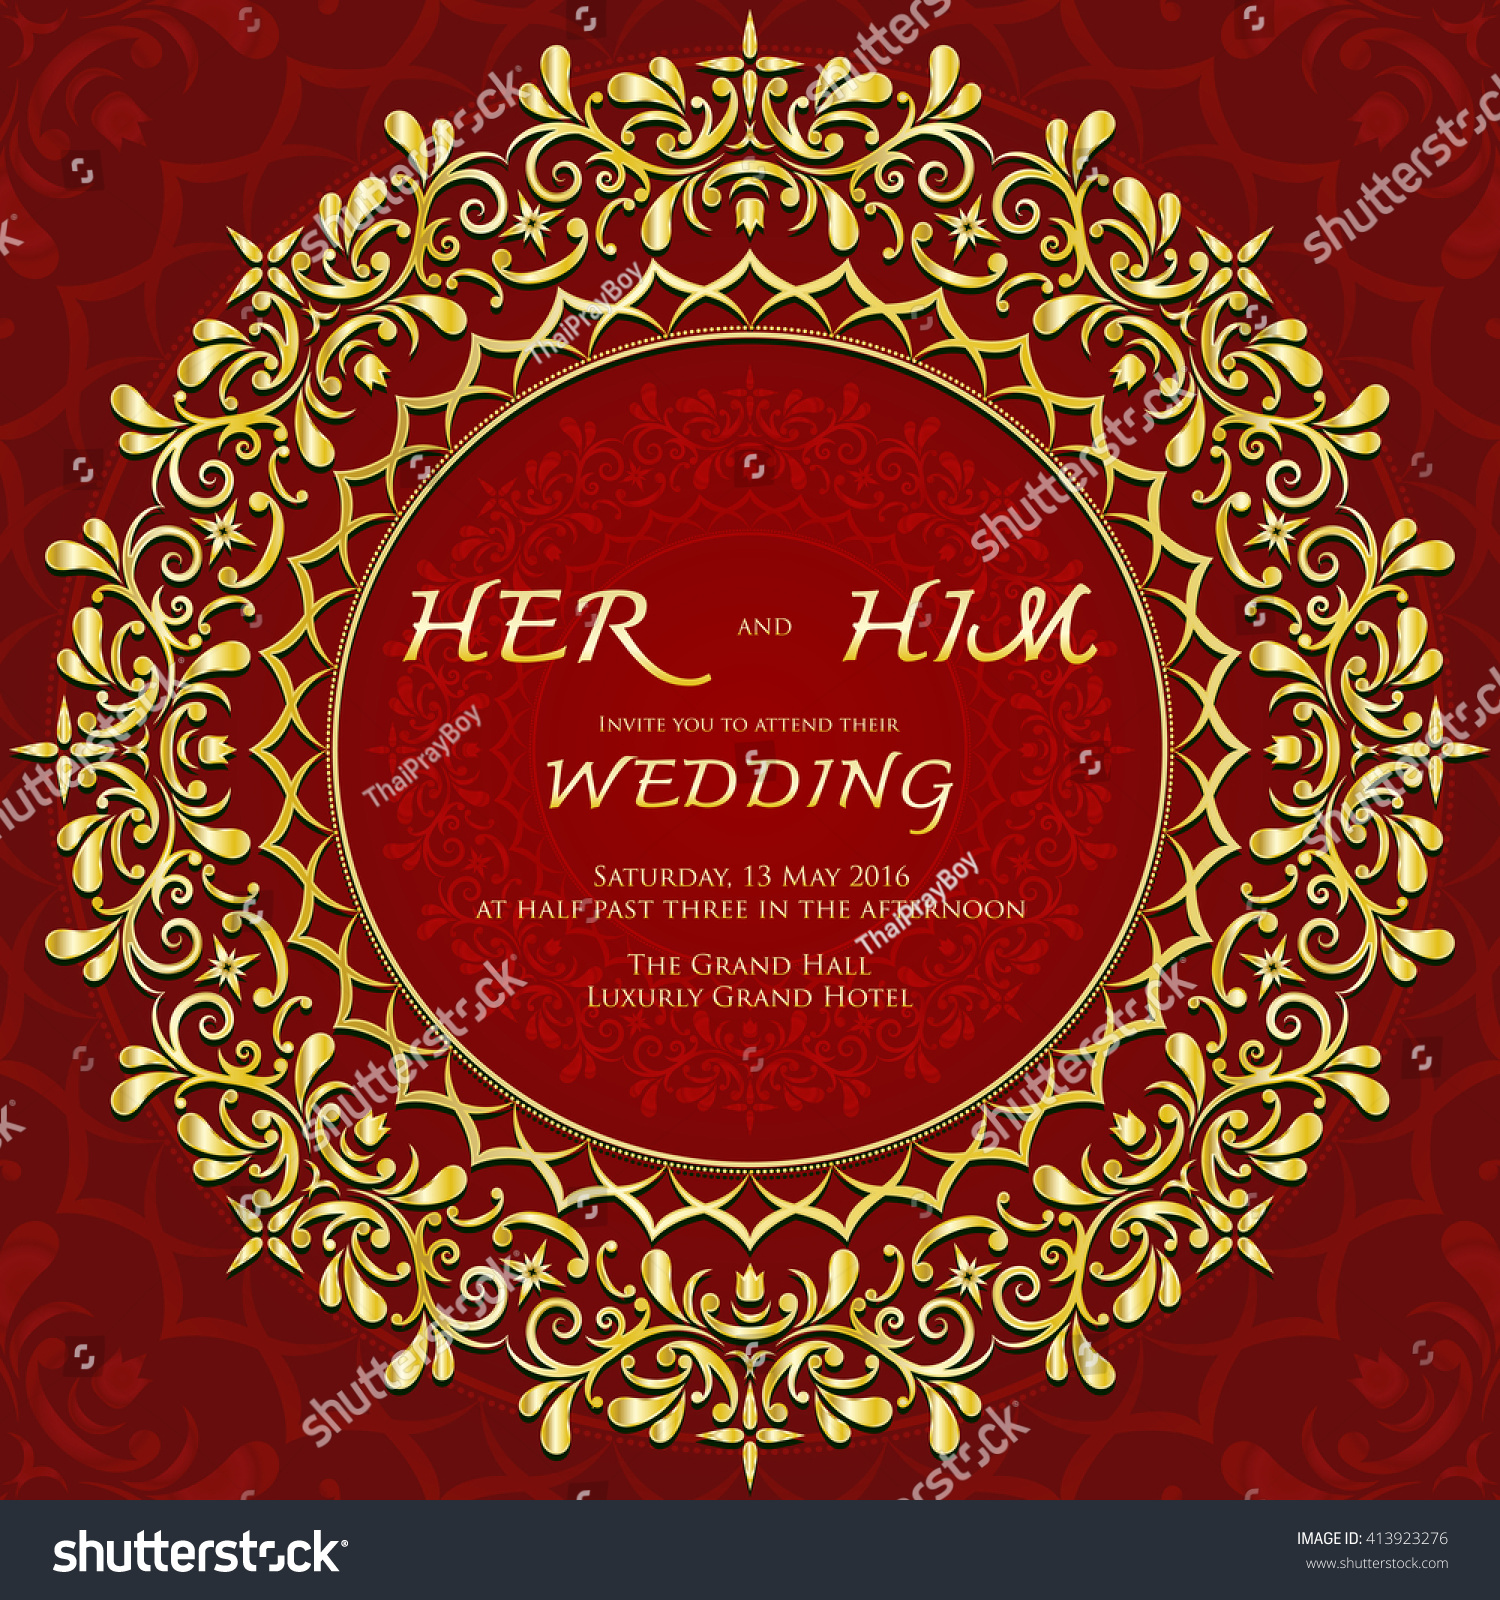 Famous Grand Wedding Invitation Cards Images - Invitations and ...